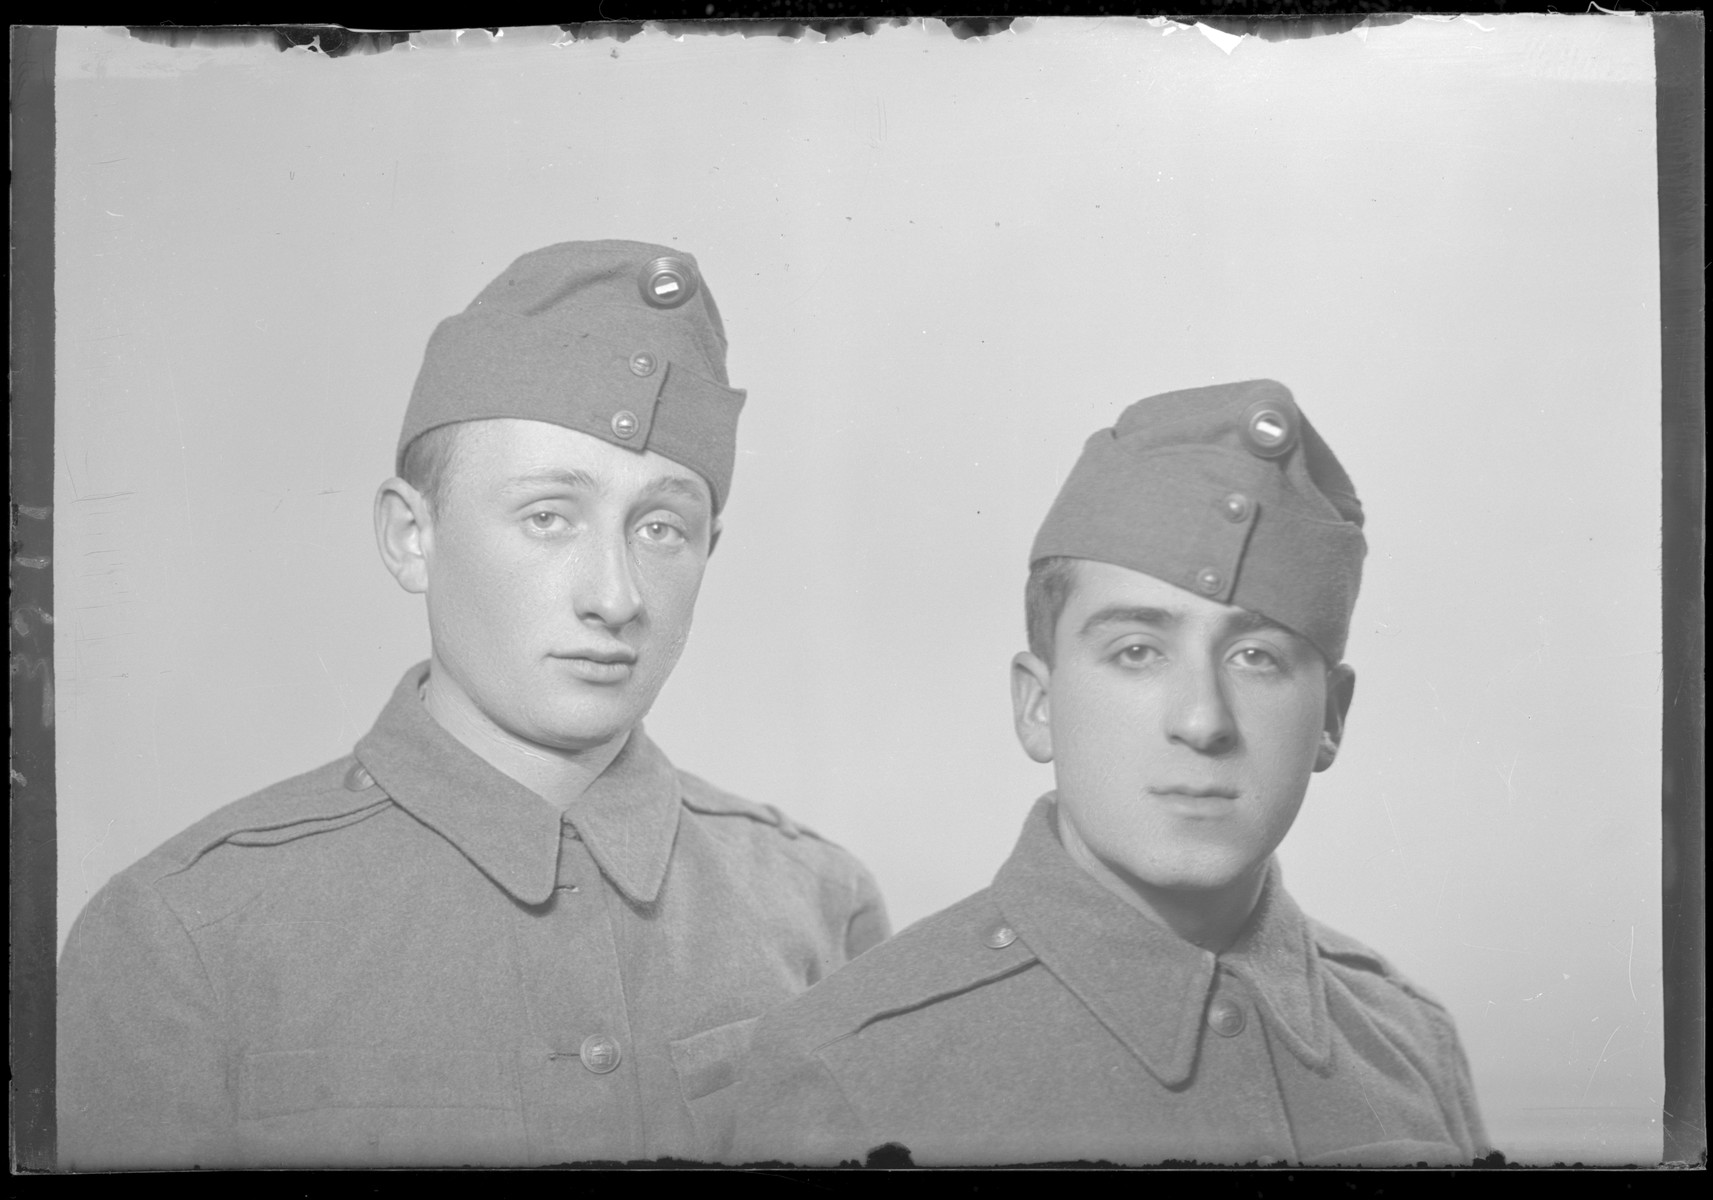 Studio portrait of Erno Silberstein and another man, both in military uniform.